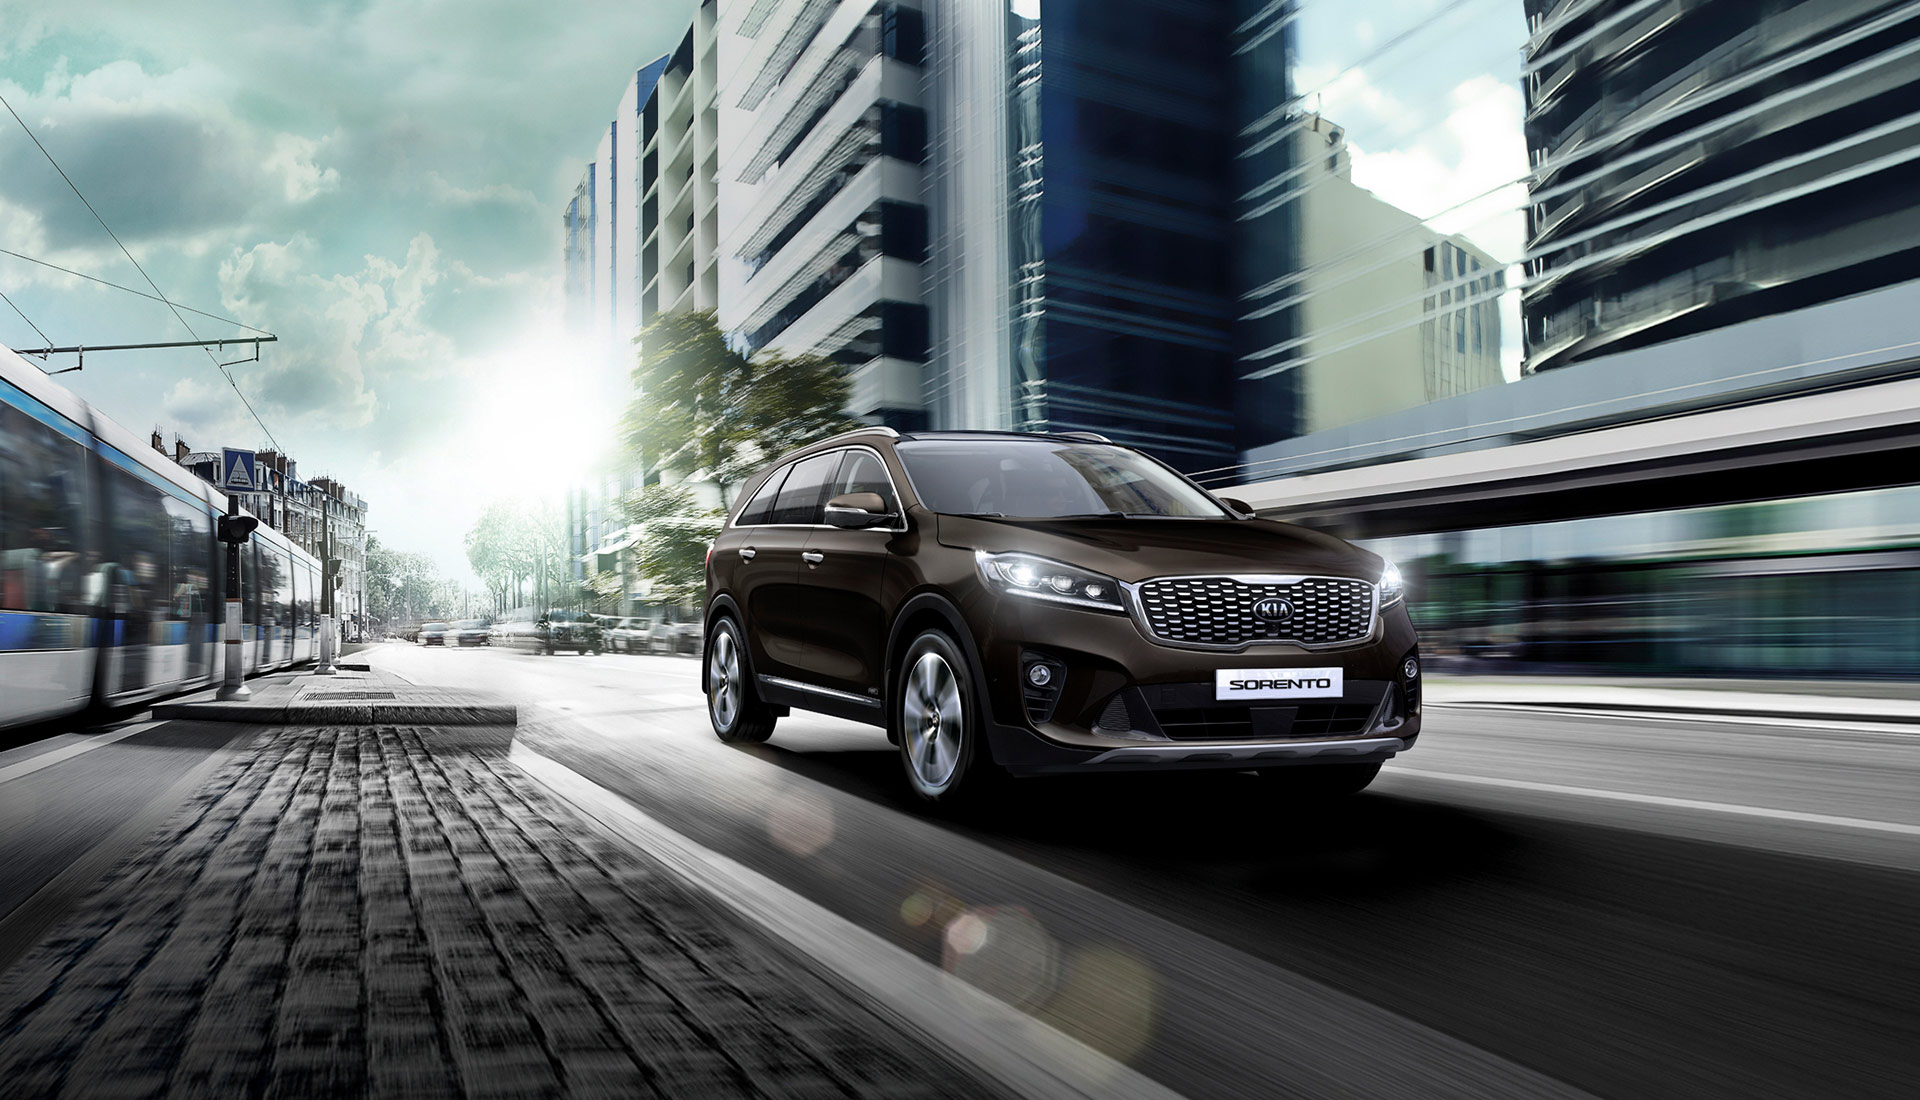 The new Kia Sorento